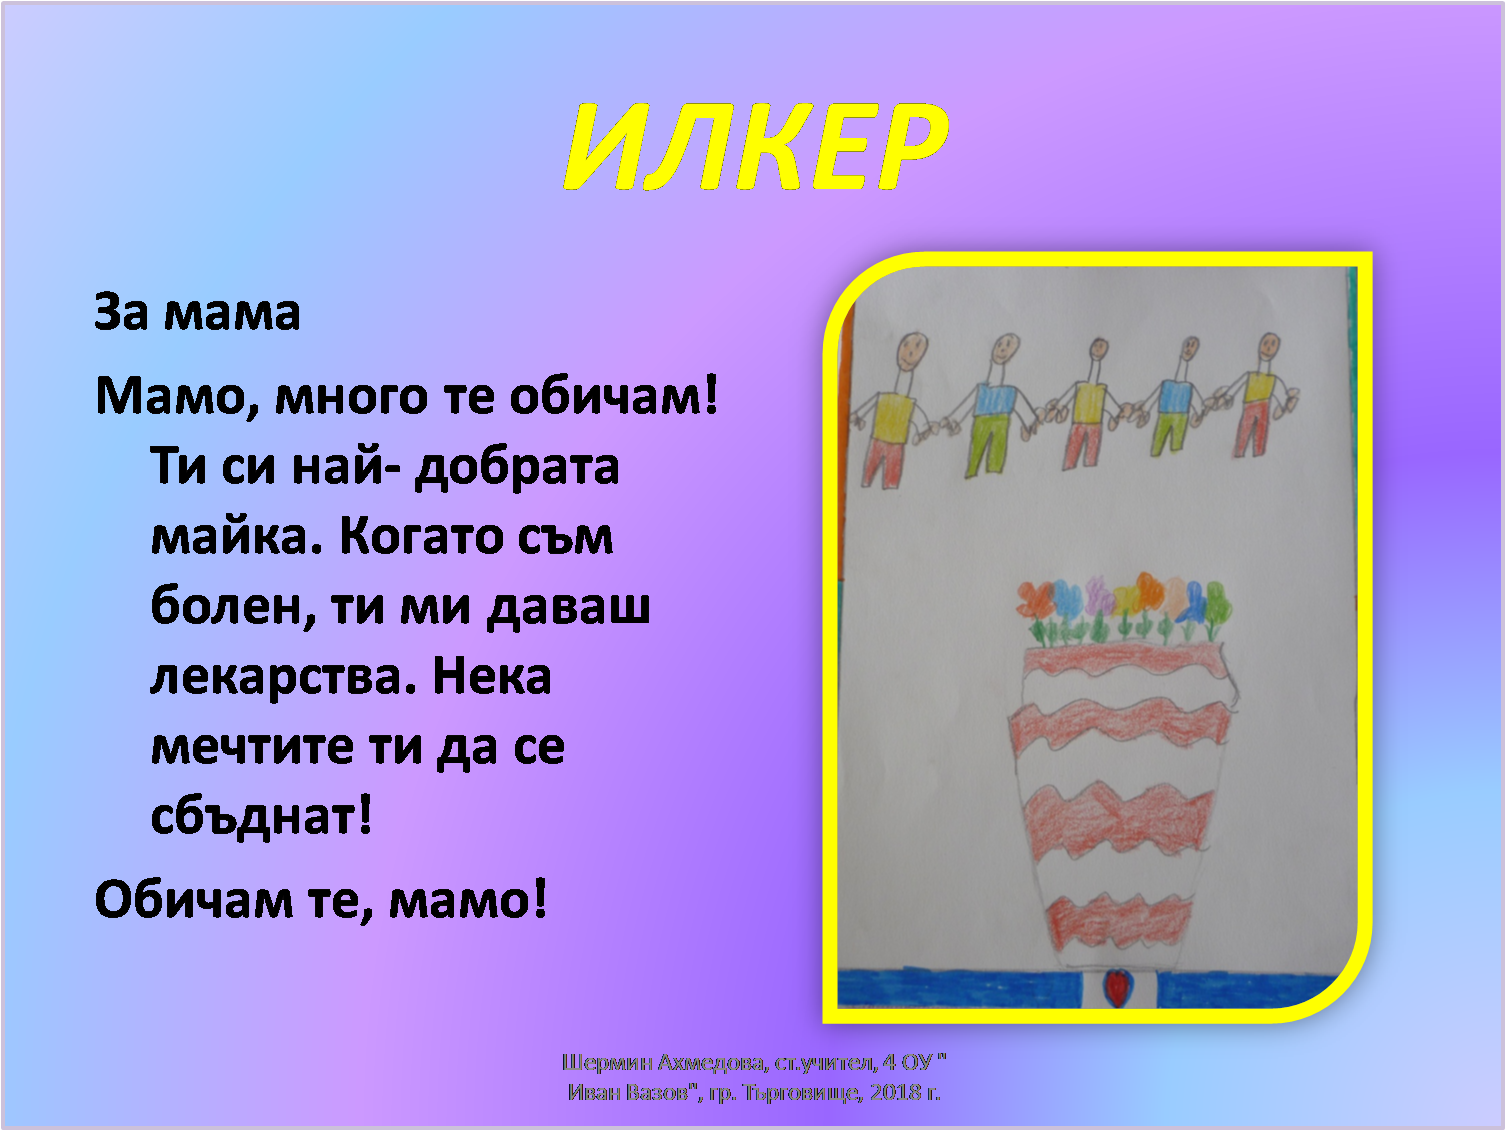 Artwork from the book - МОРЕ ОТ ЛЮБОВ ЗА МАМА by Shermin Ahmedova - Ourboox.com